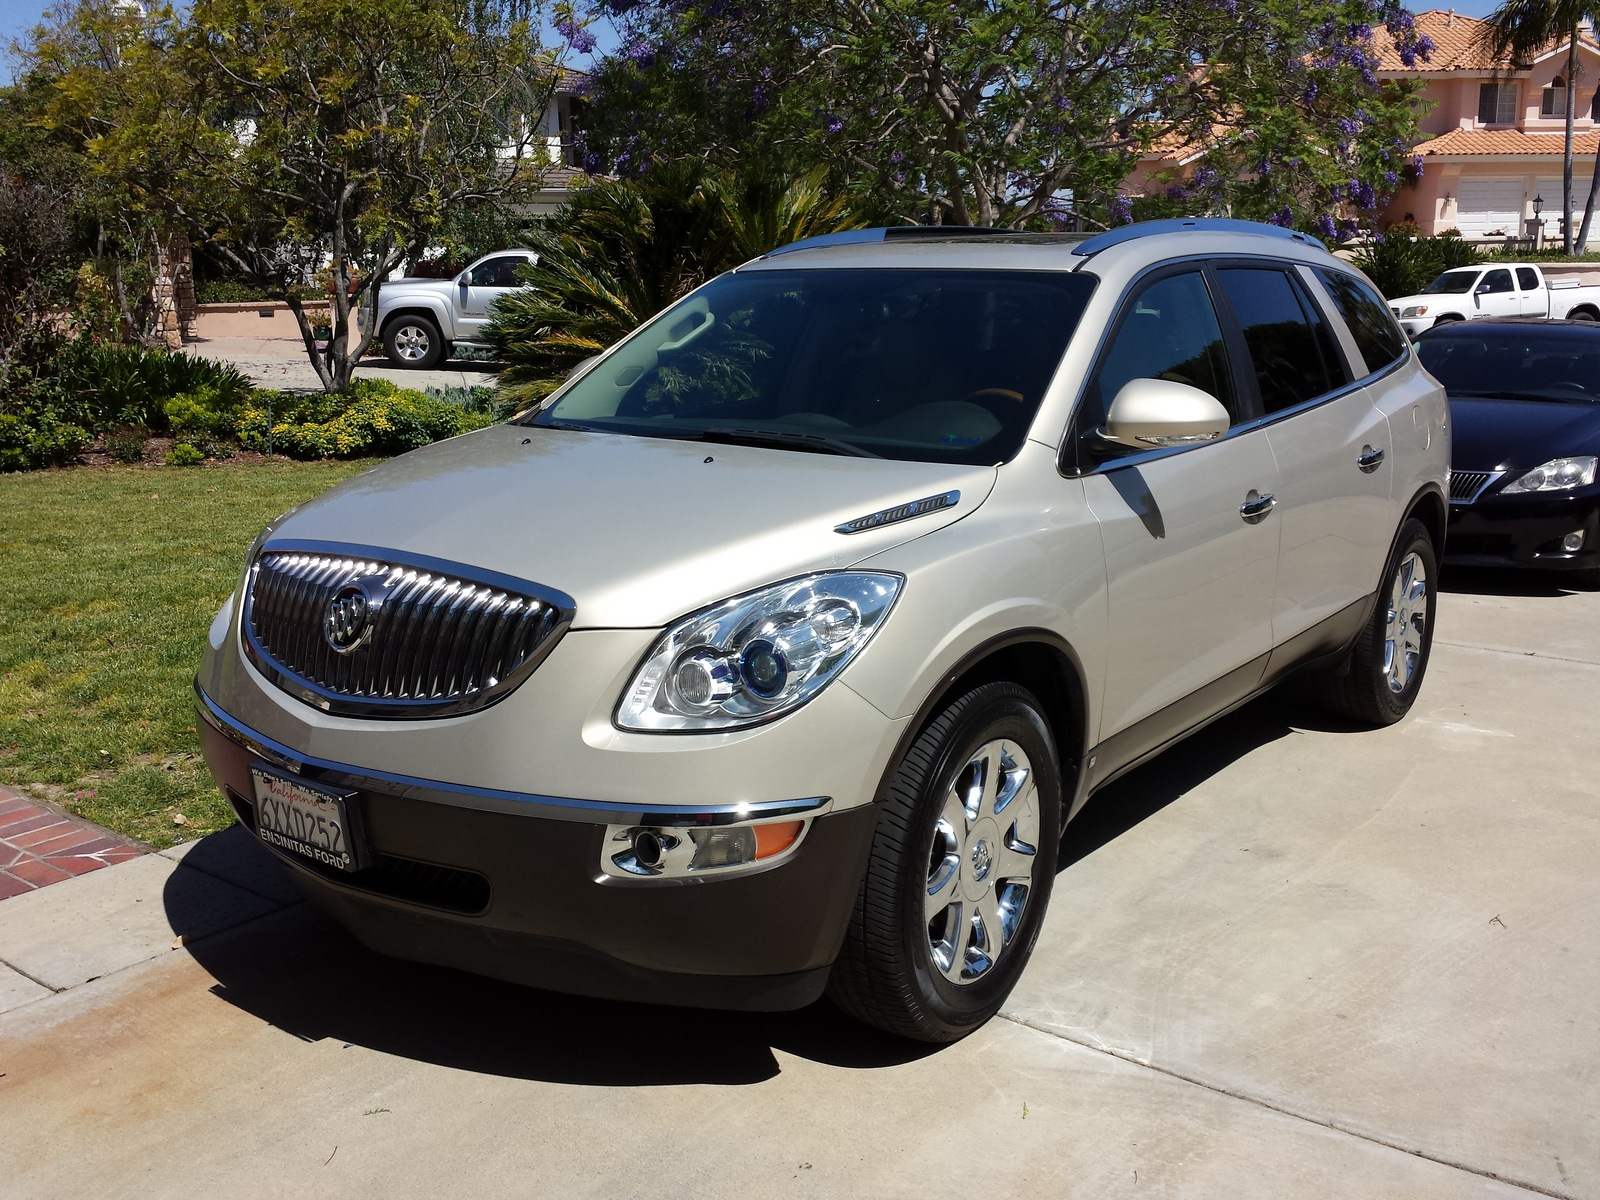 used buick enclave for sale san diego ca cargurus. Black Bedroom Furniture Sets. Home Design Ideas